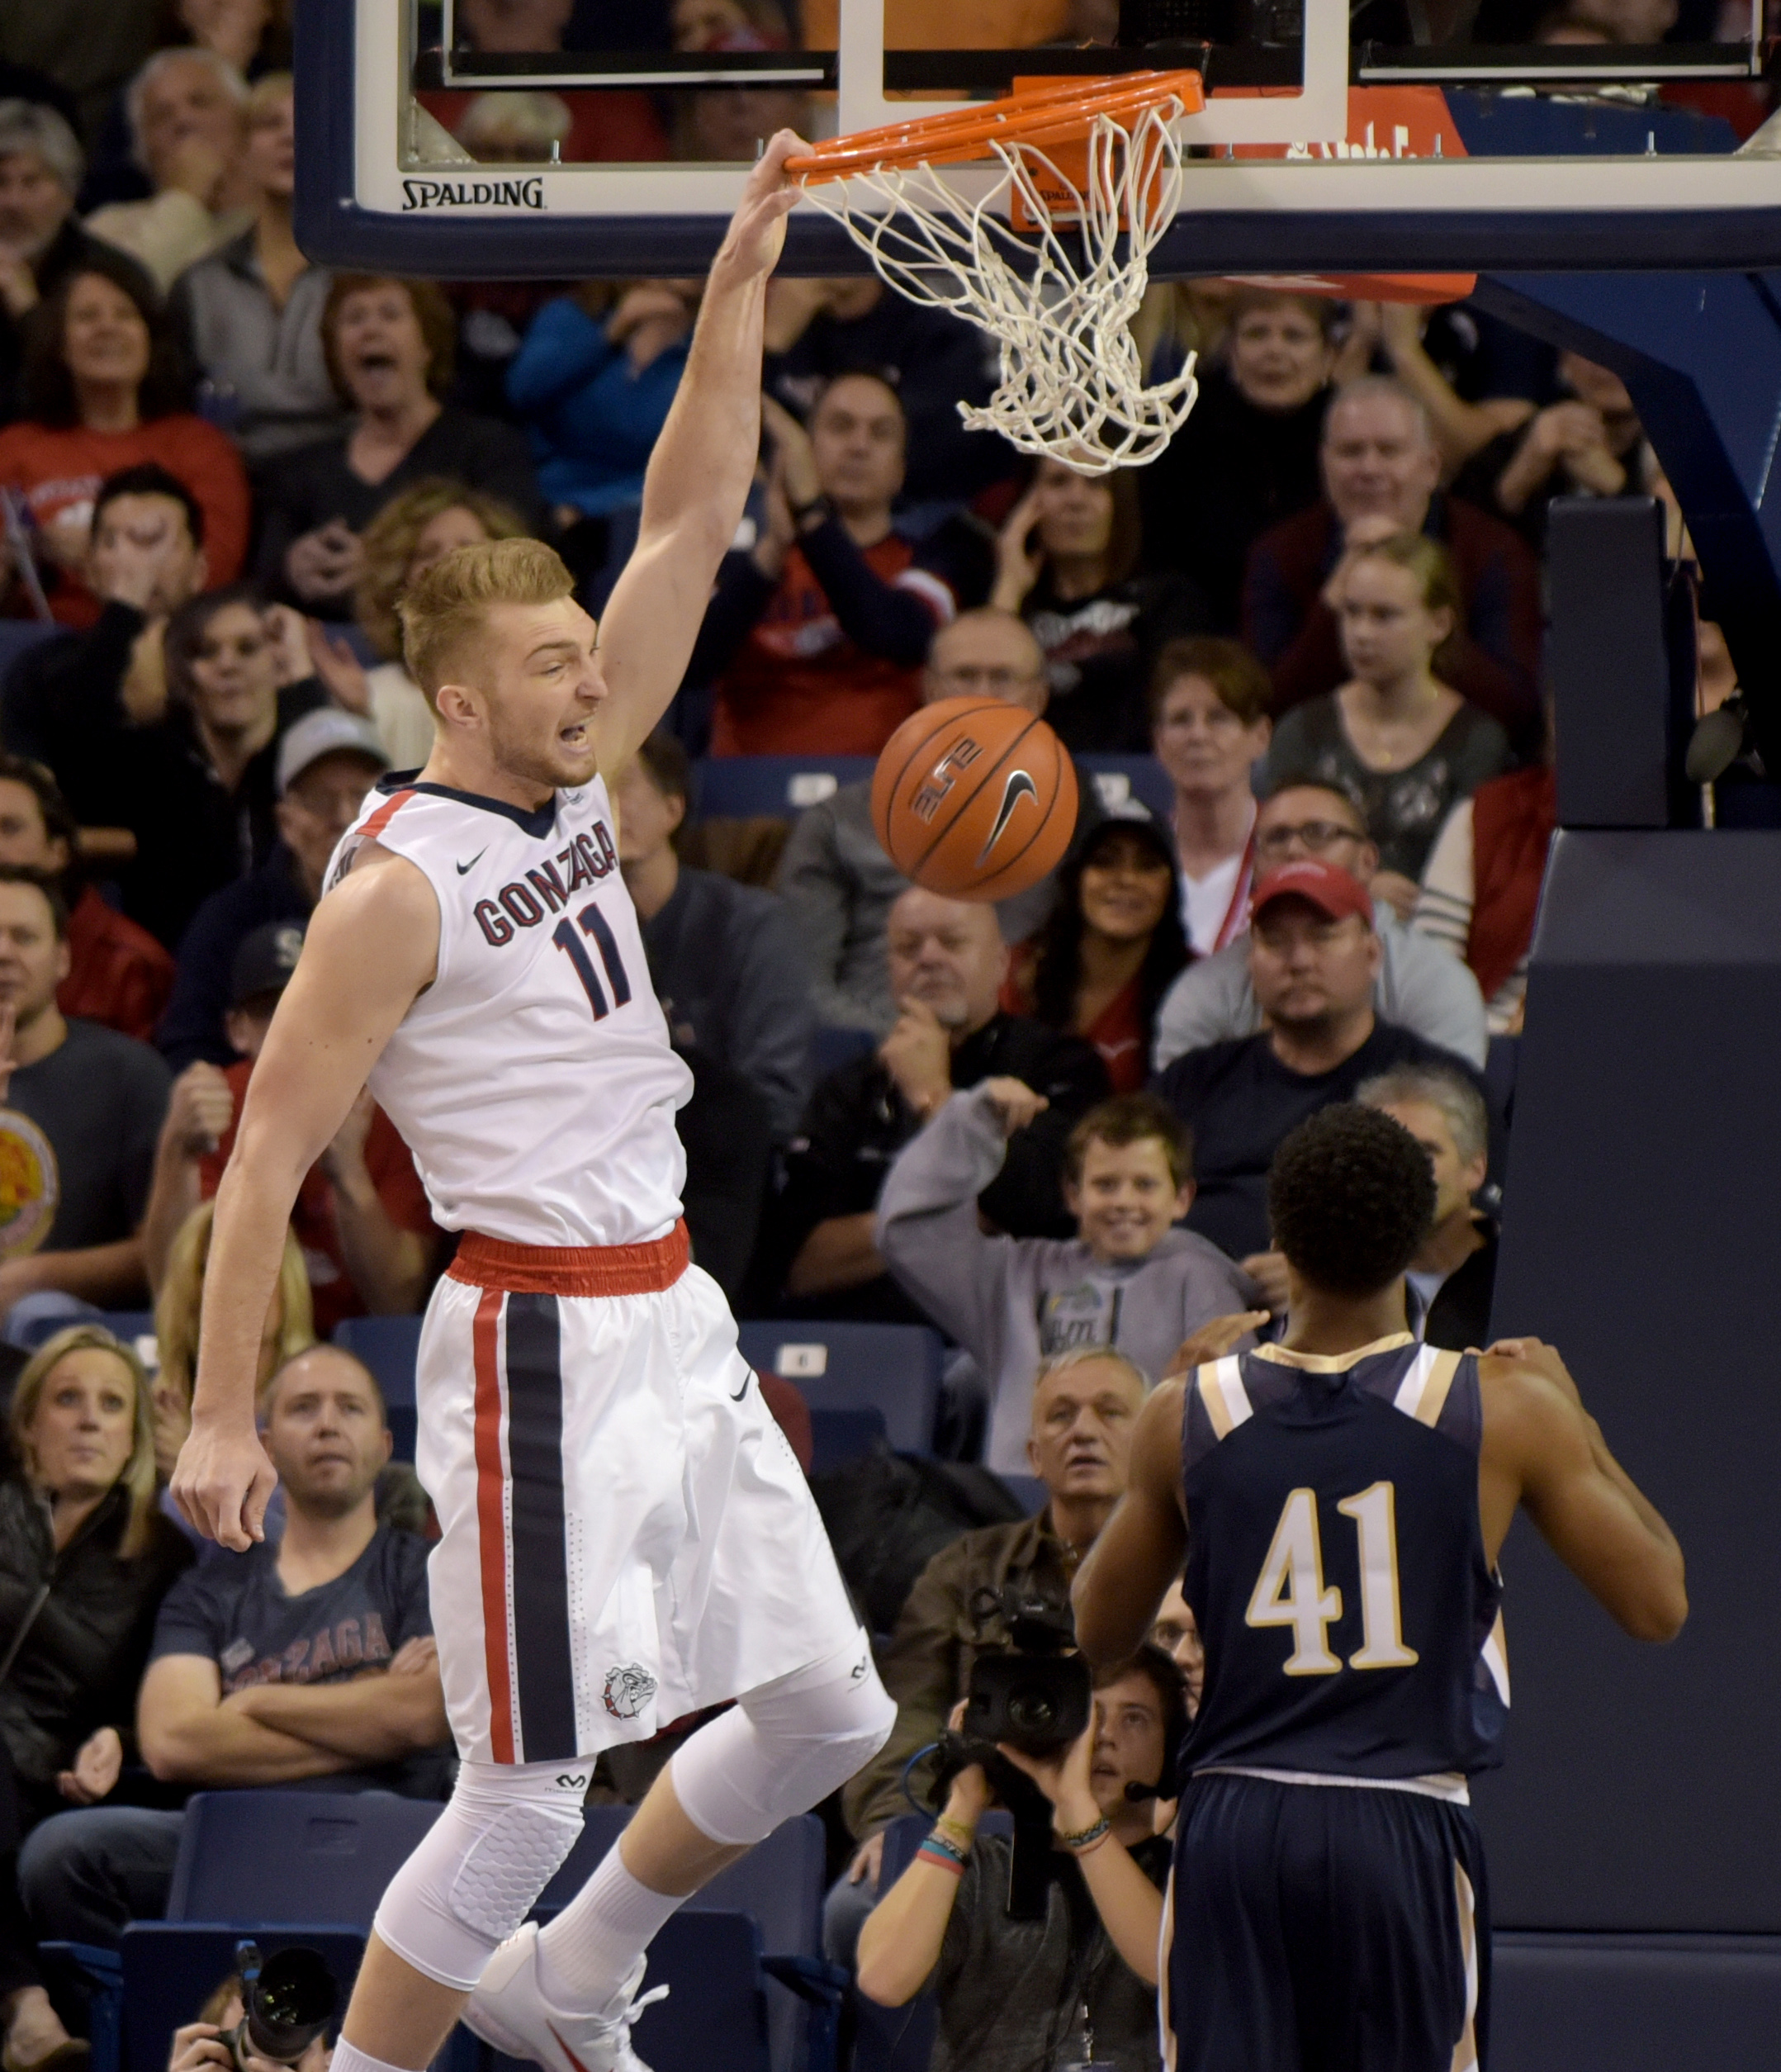 Gonzaga's Domantas Sabonis (11) dunks on Mount St. Mary's BK Ashe (41) in the first half of an NCAA college basketball game, Saturday, Nov. 21, 2015, in Spokane, Wash. Gonzaga beat Mount St. Mary's 101-56.(AP Photo/Rajah Bose)